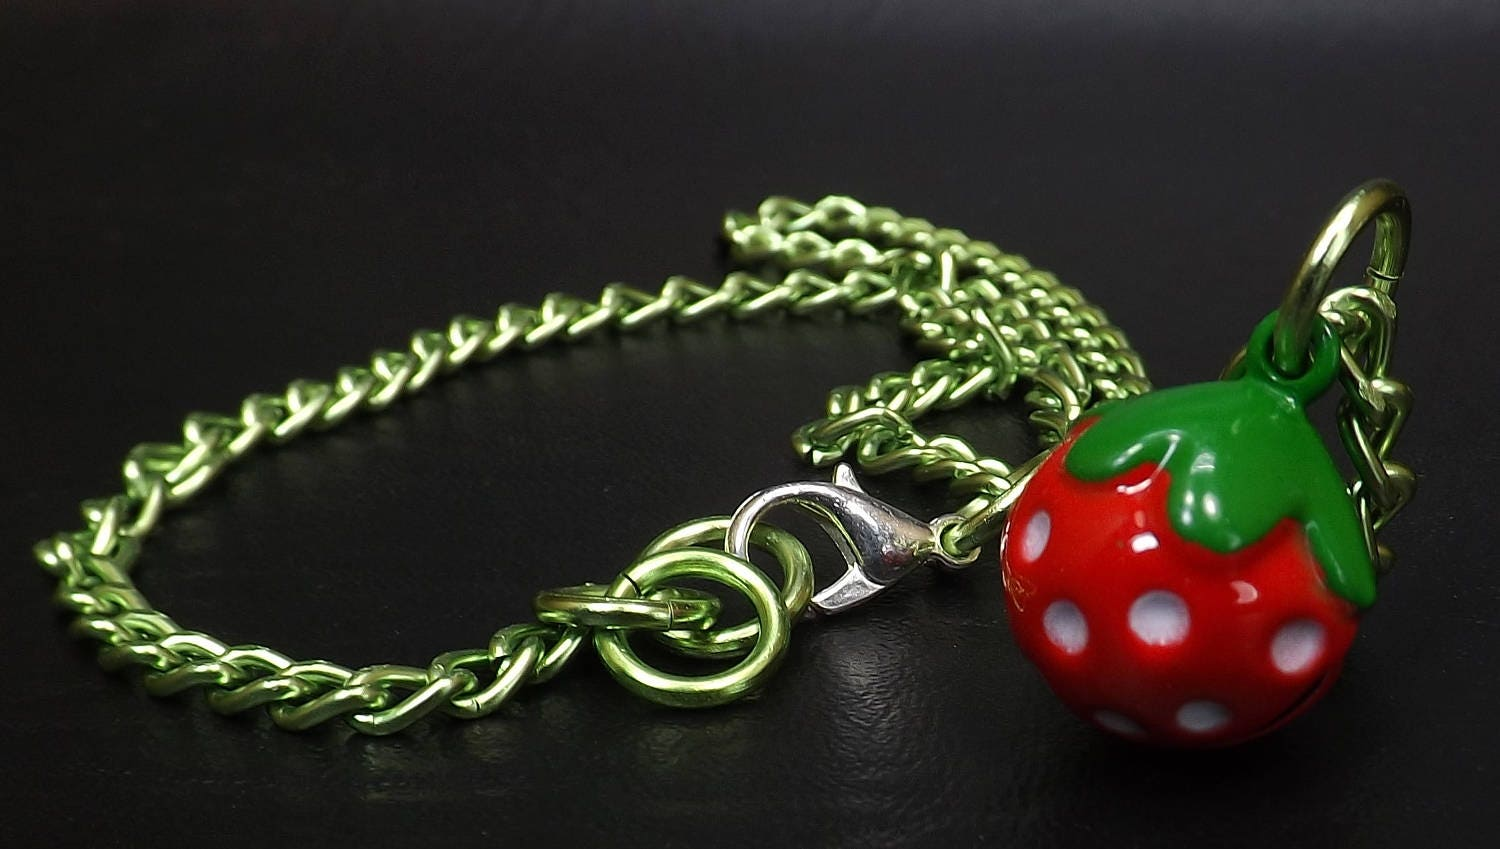 Bell Day collar discreet babygirl bdsm jewelry strawberry bell necklace kitten play jewelry ddlg gift - product image